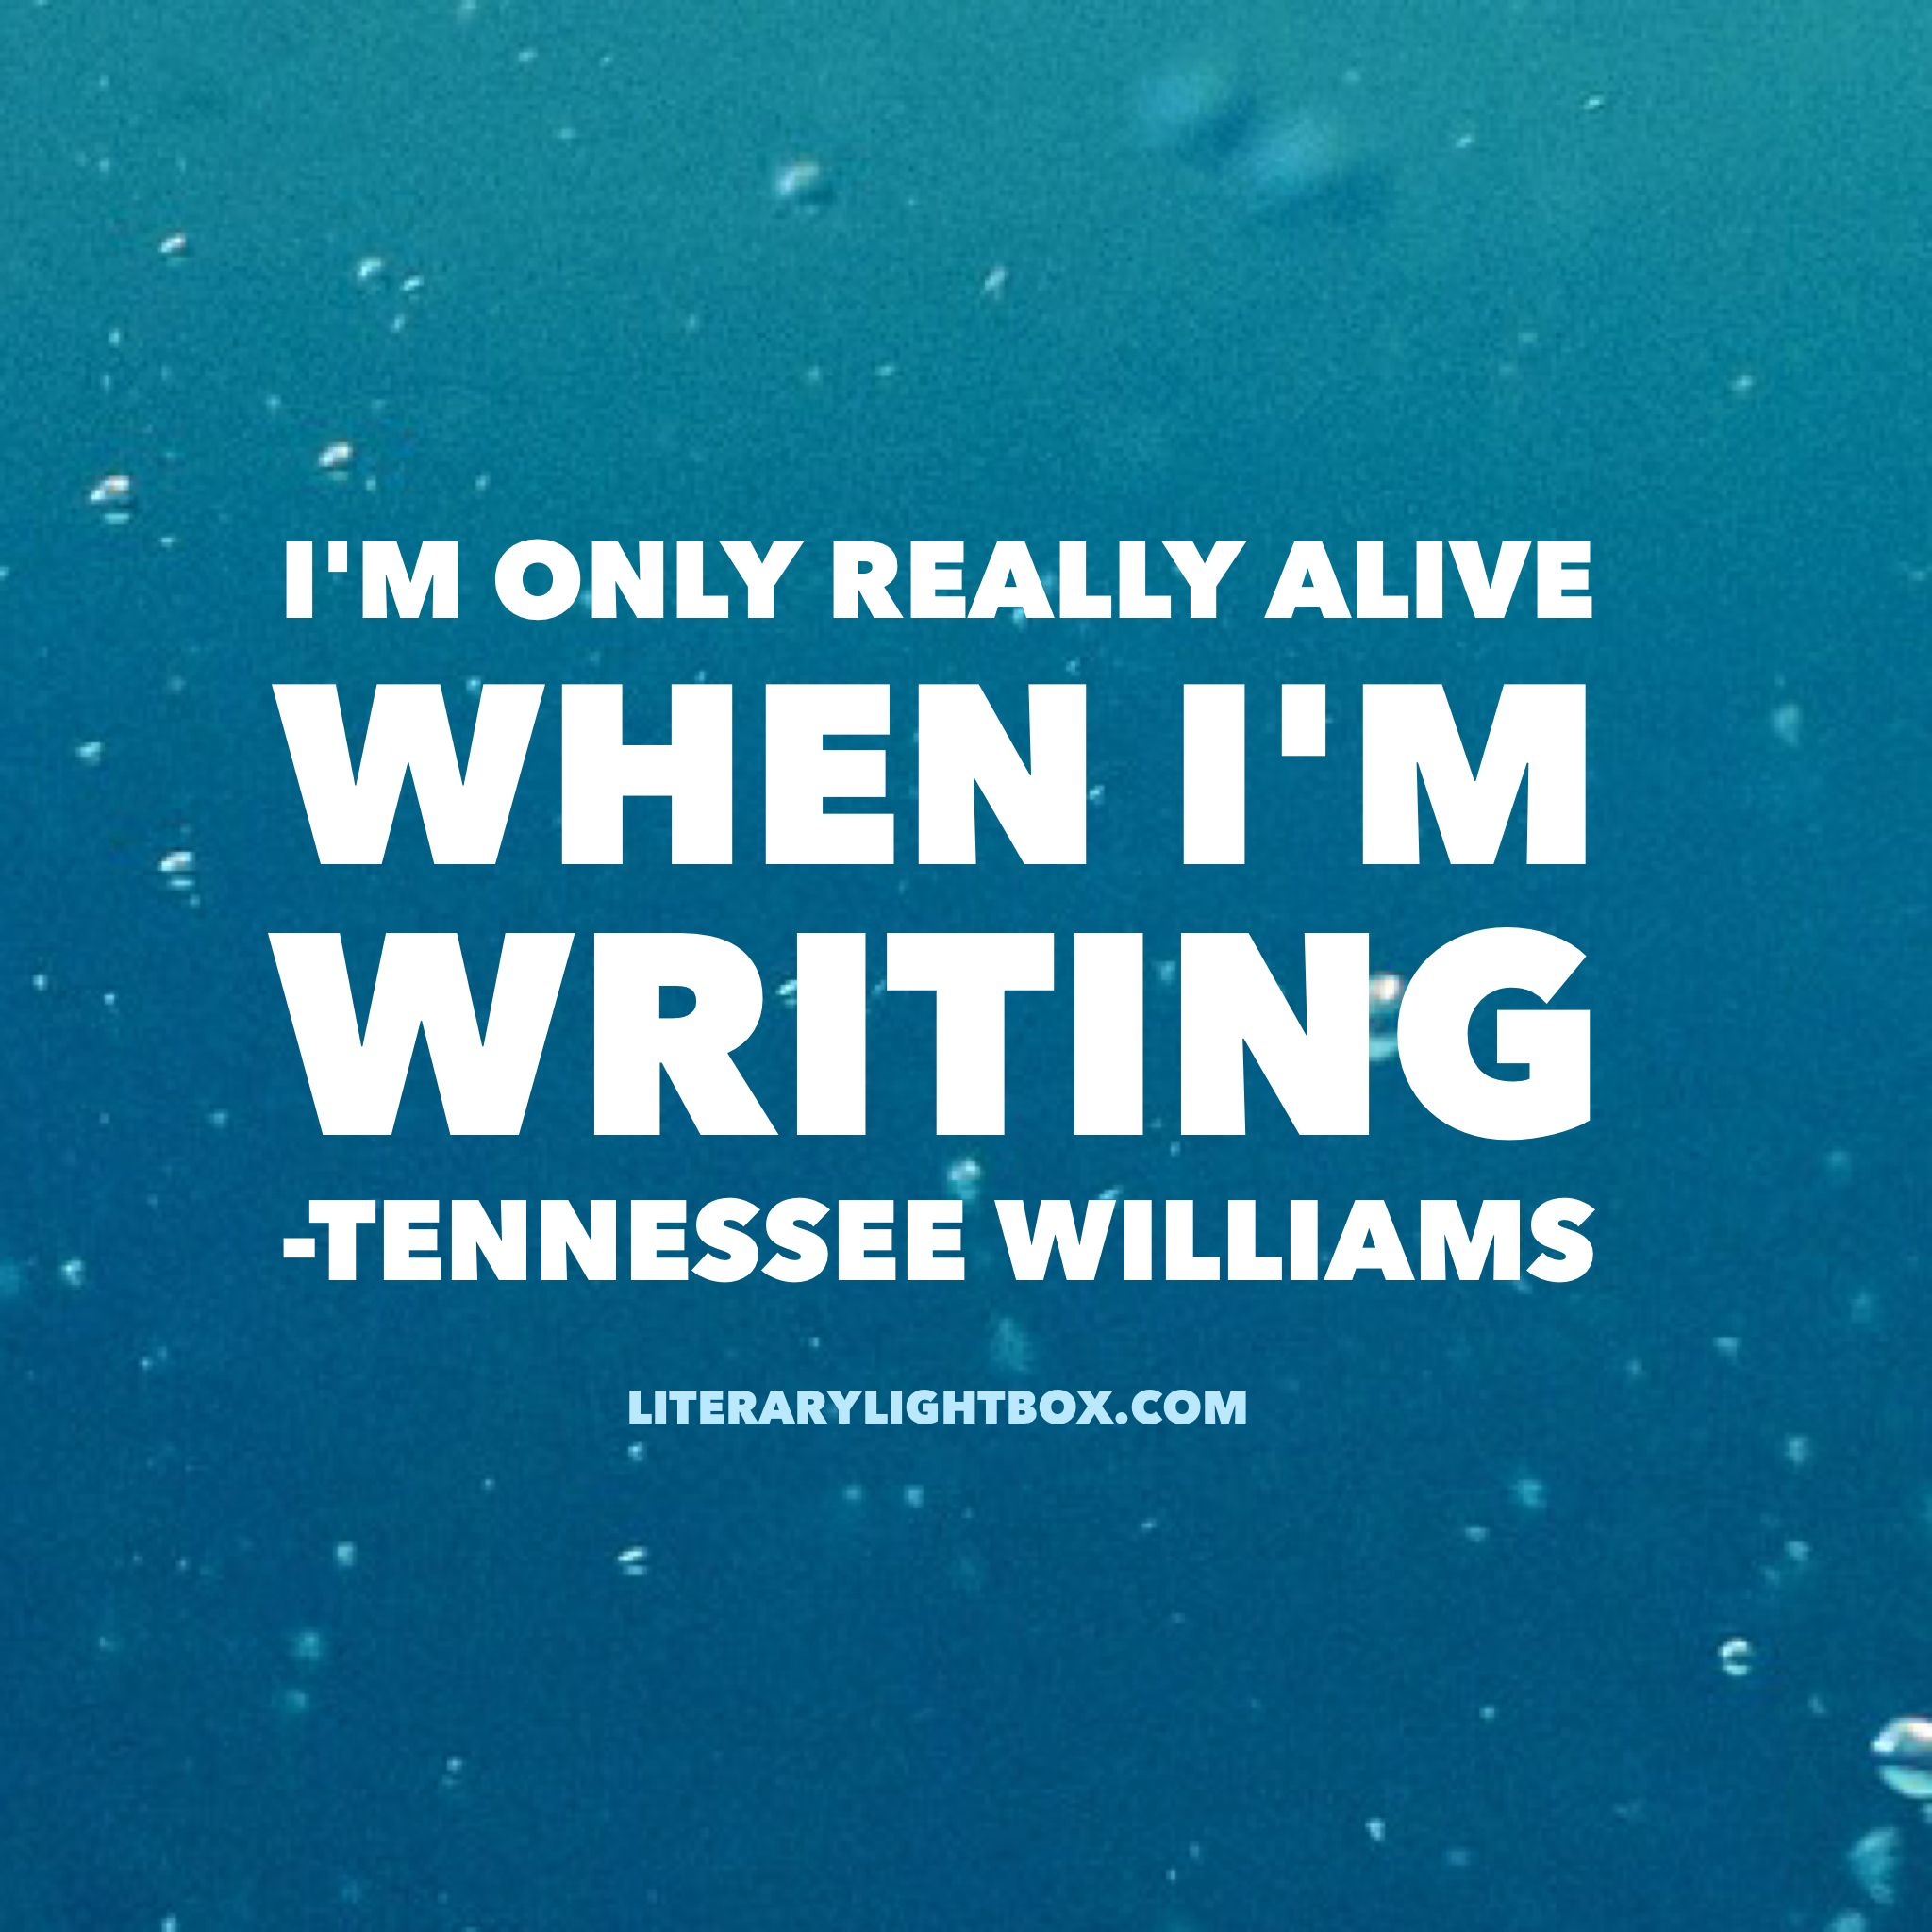 """""""I'm only really alive when I'm writing."""" - Tennessee Williams @LitLightbox #writing #writerslife #books https://t.co/F1BAZwA83K"""